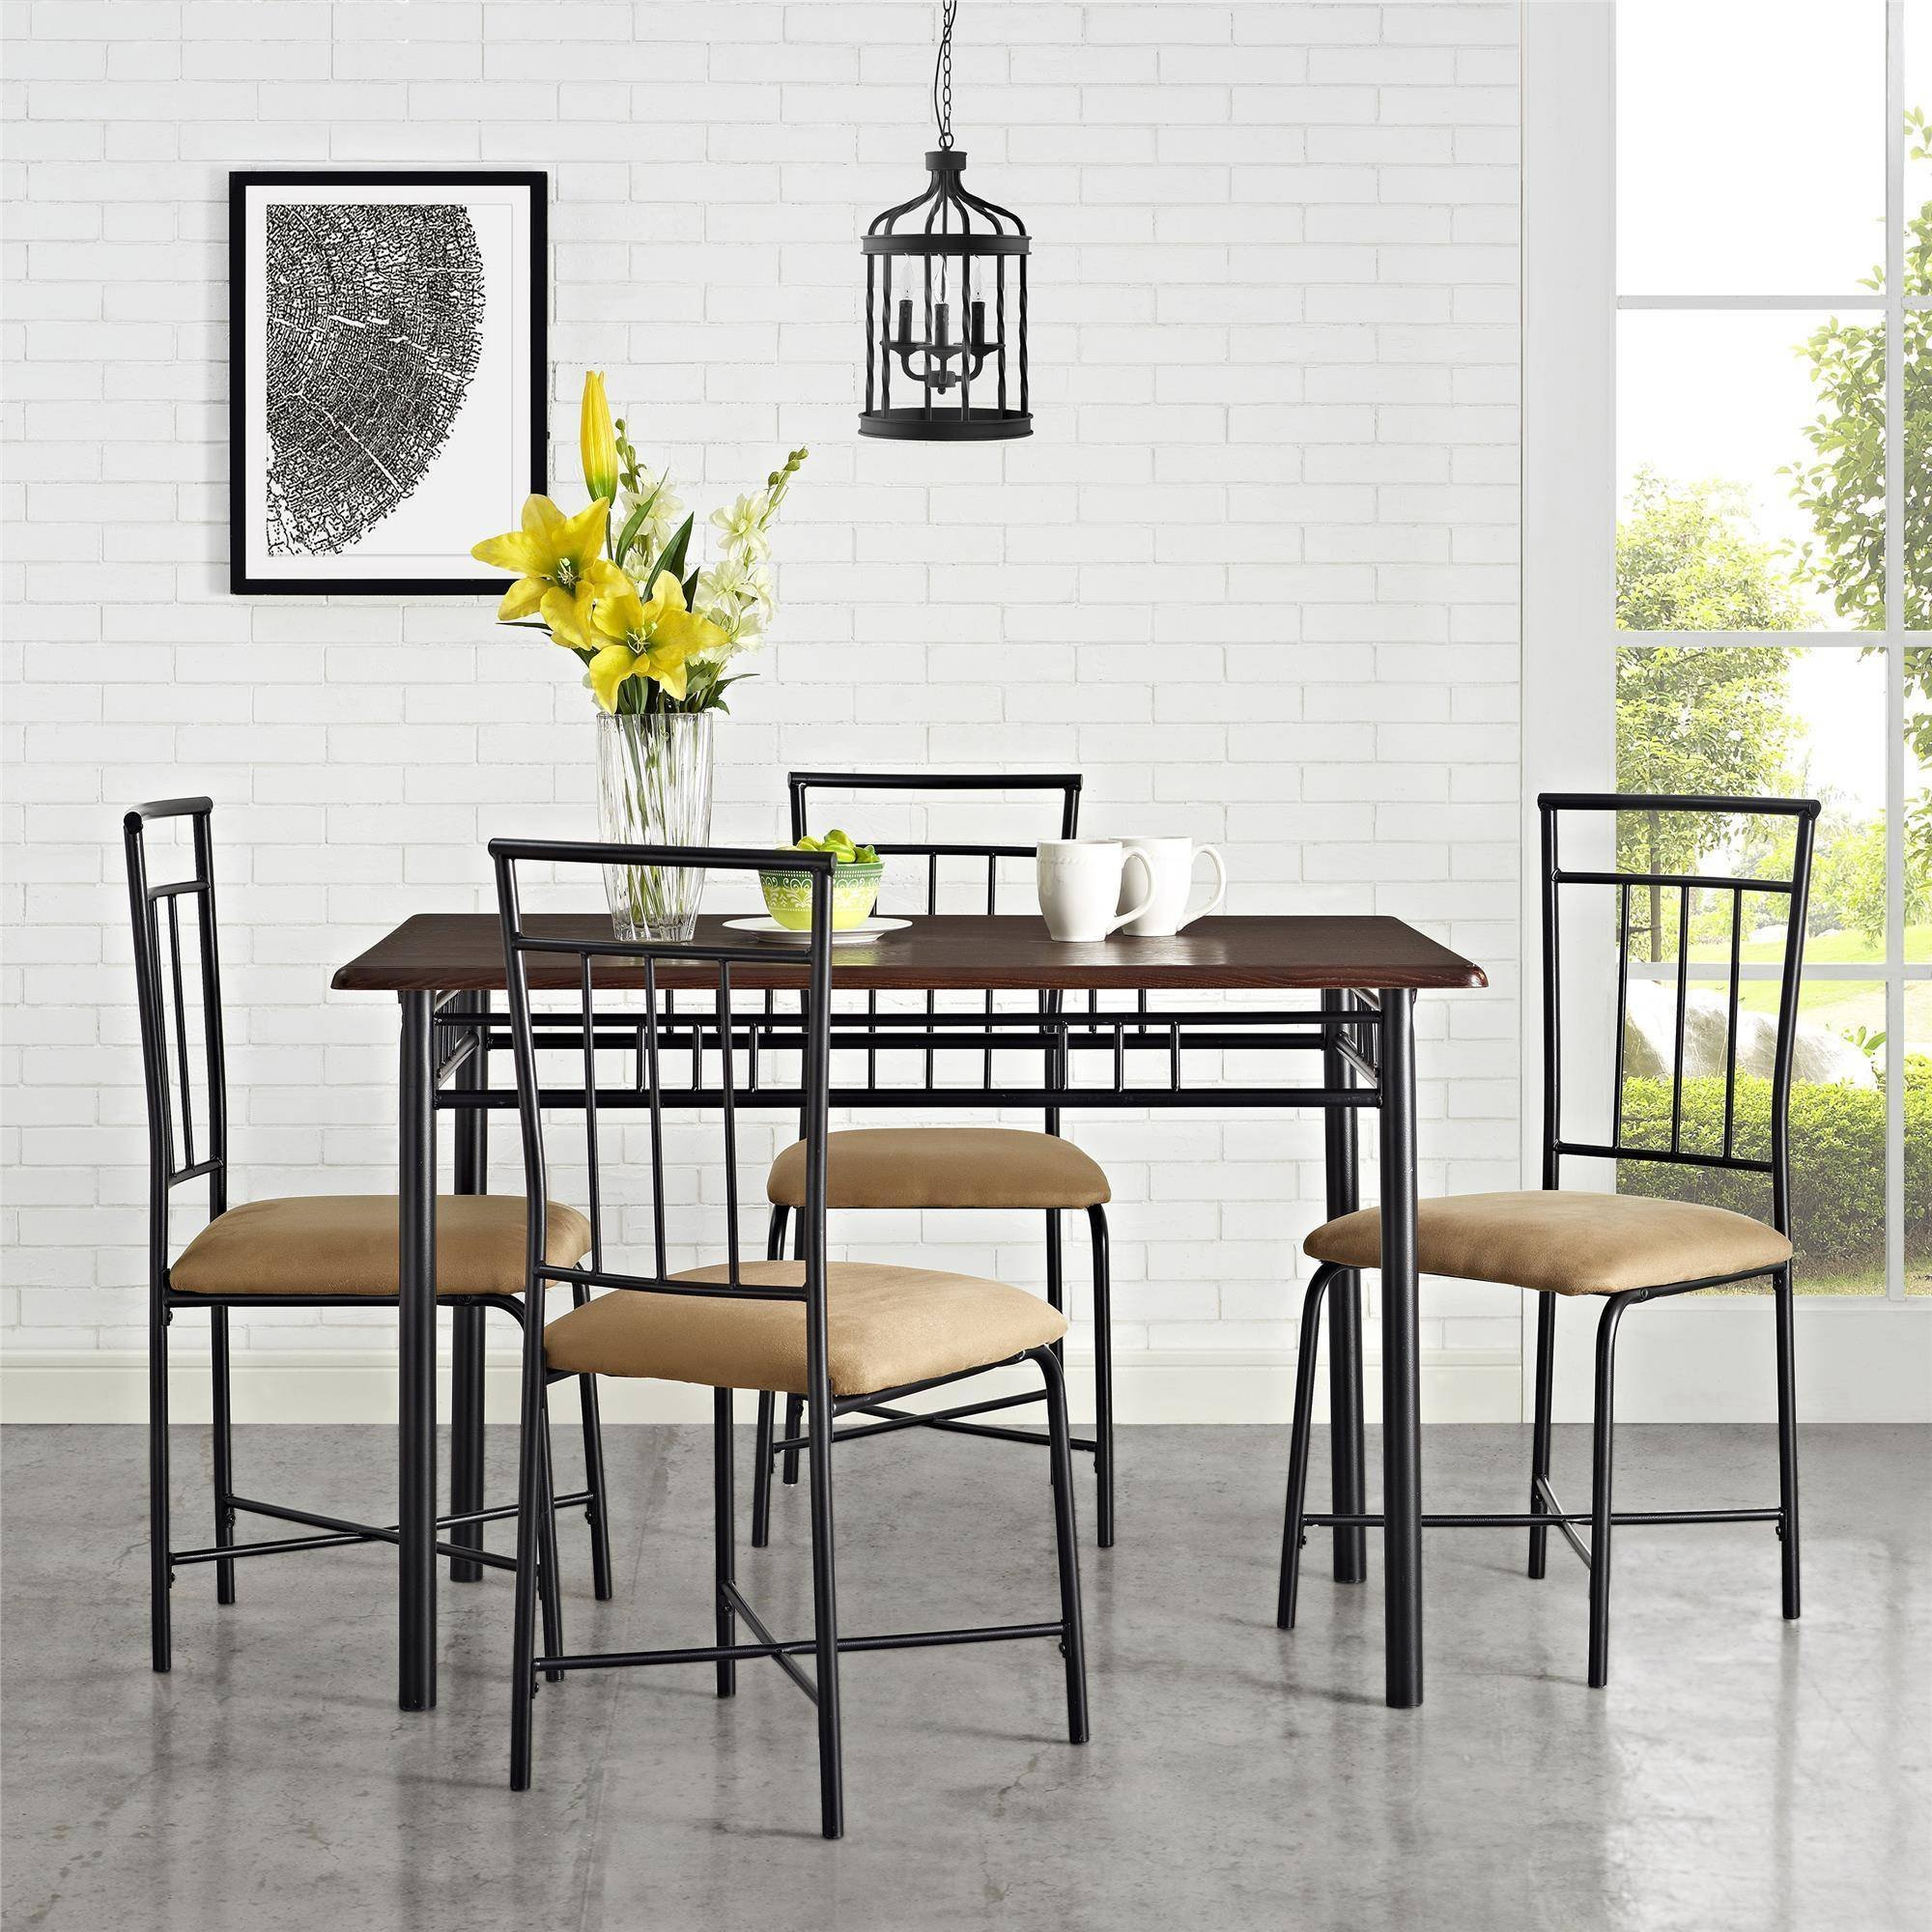 MS furniture Transitional 5 Piece Dining Set by MS furniture